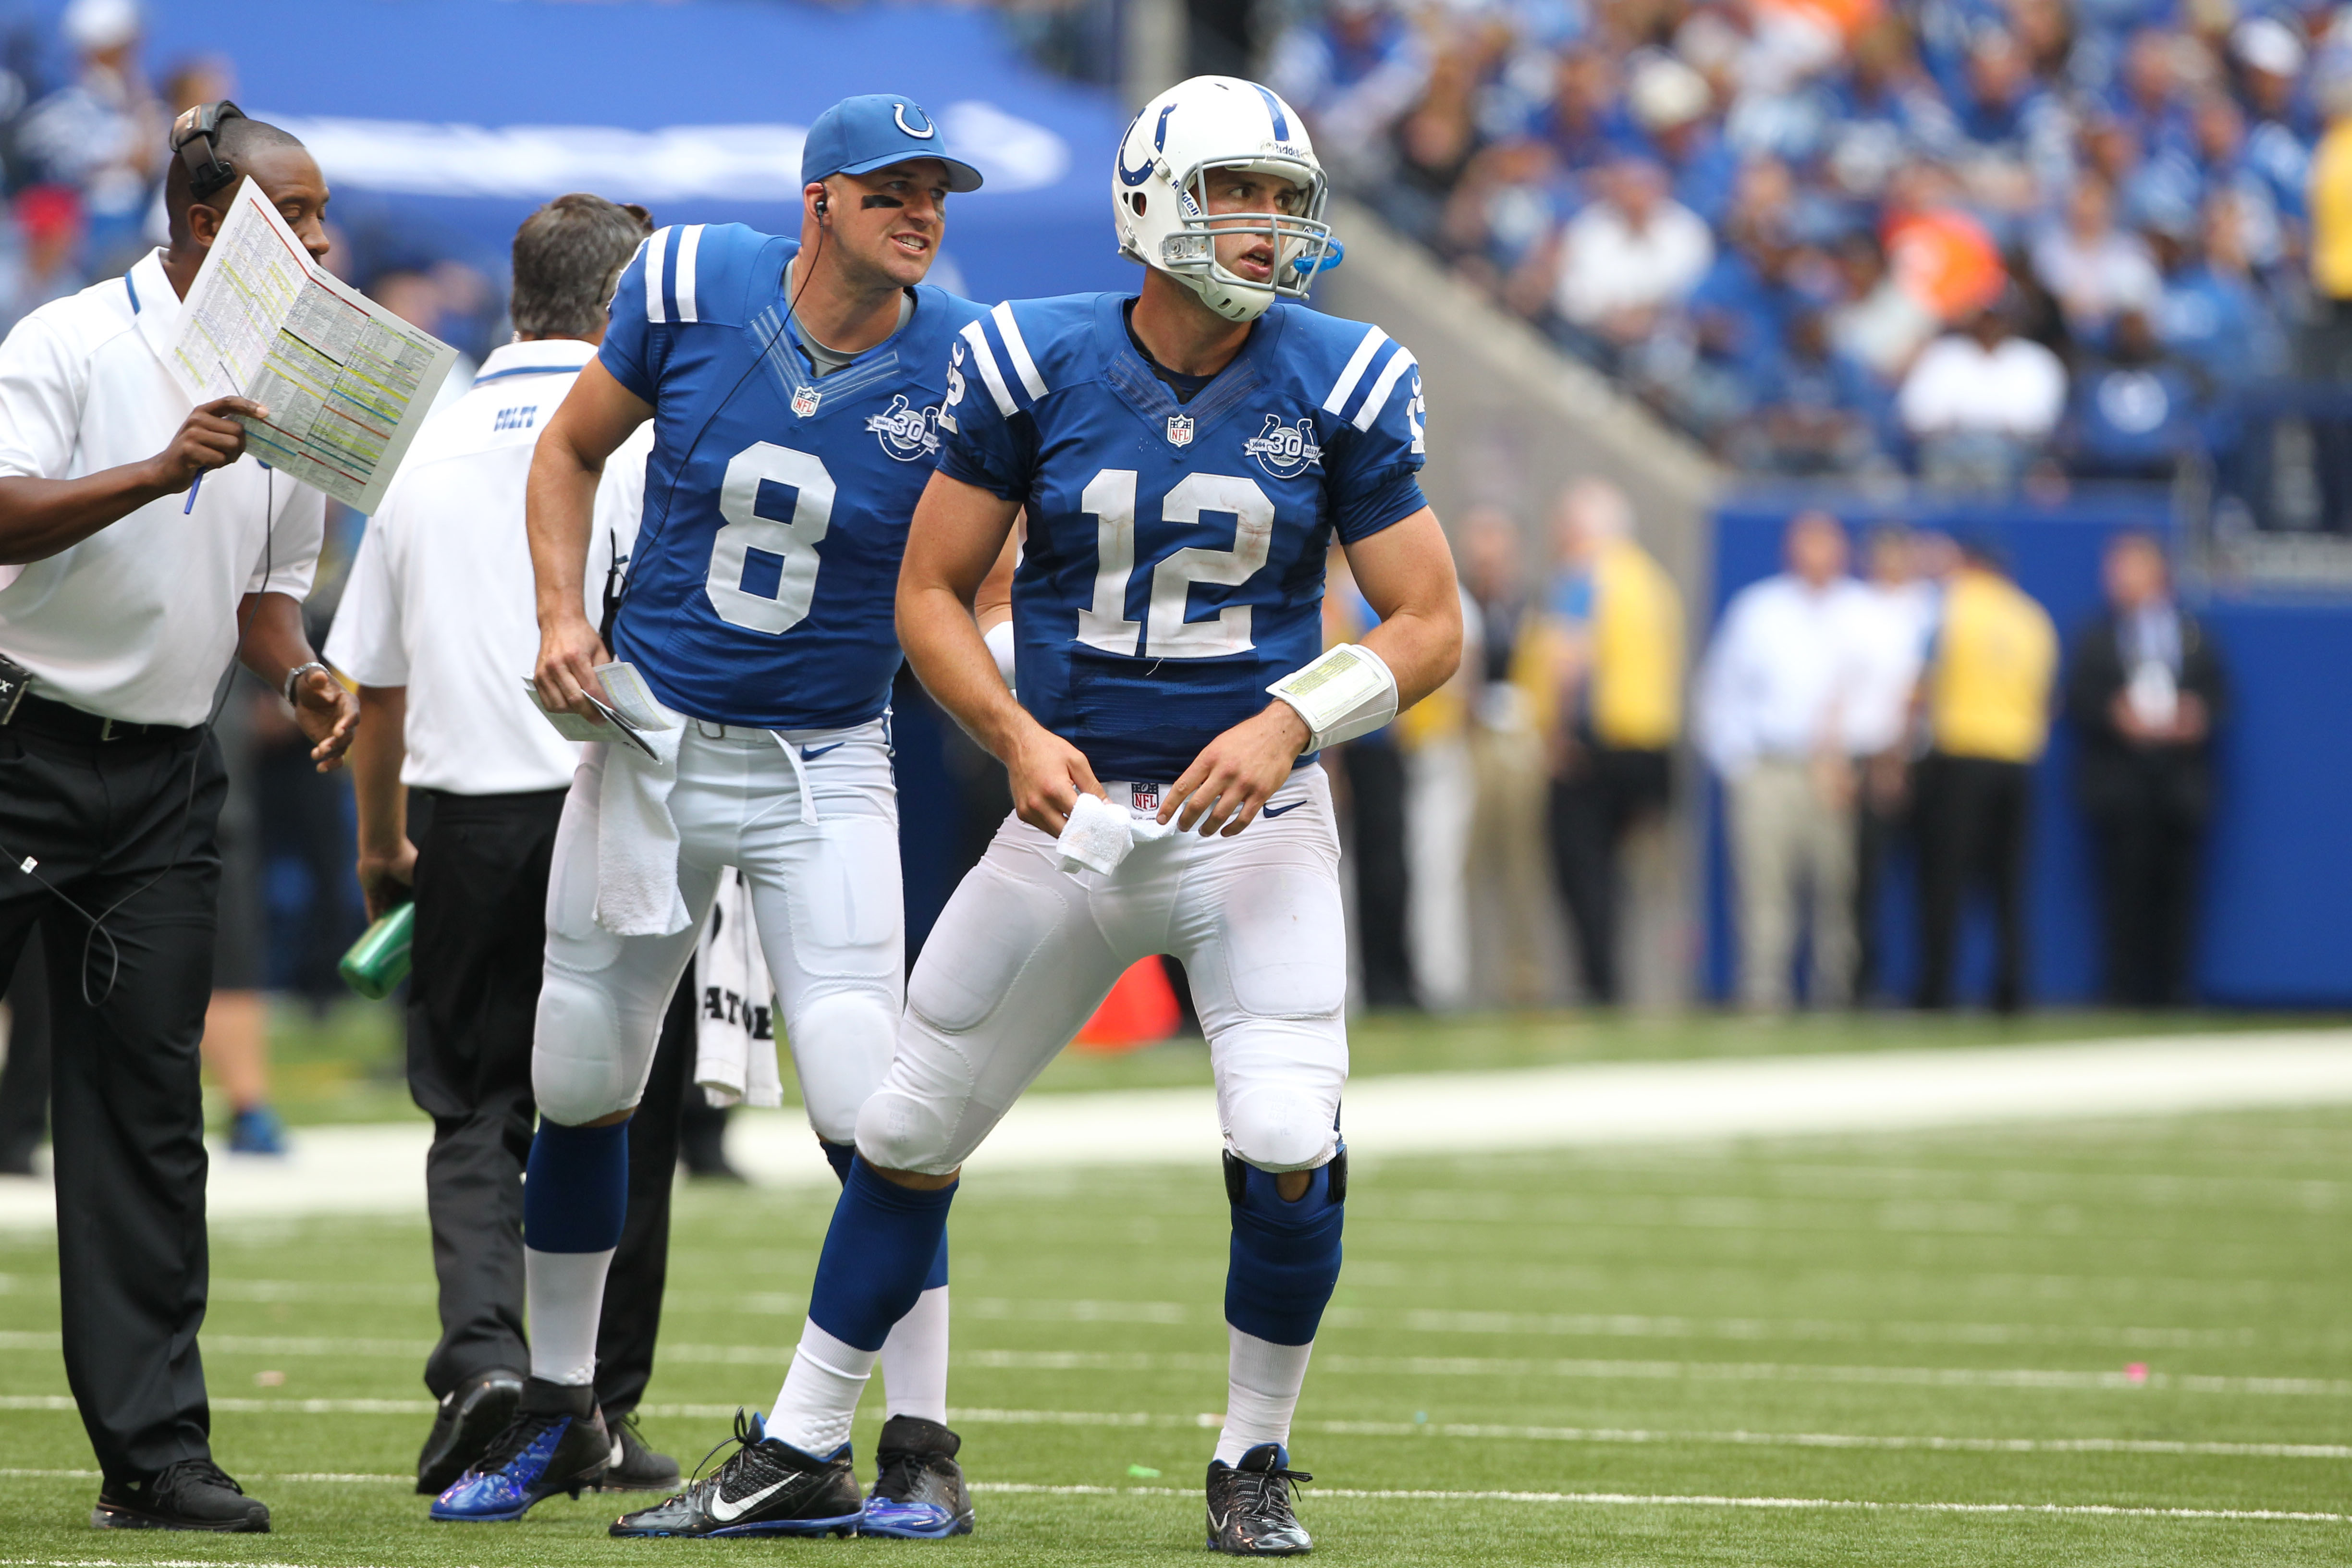 Matt Hasselbeck (8) wants a shot at another Super Bowl, even if he isn't the leading man in Indy. (USA TODAY Sports)